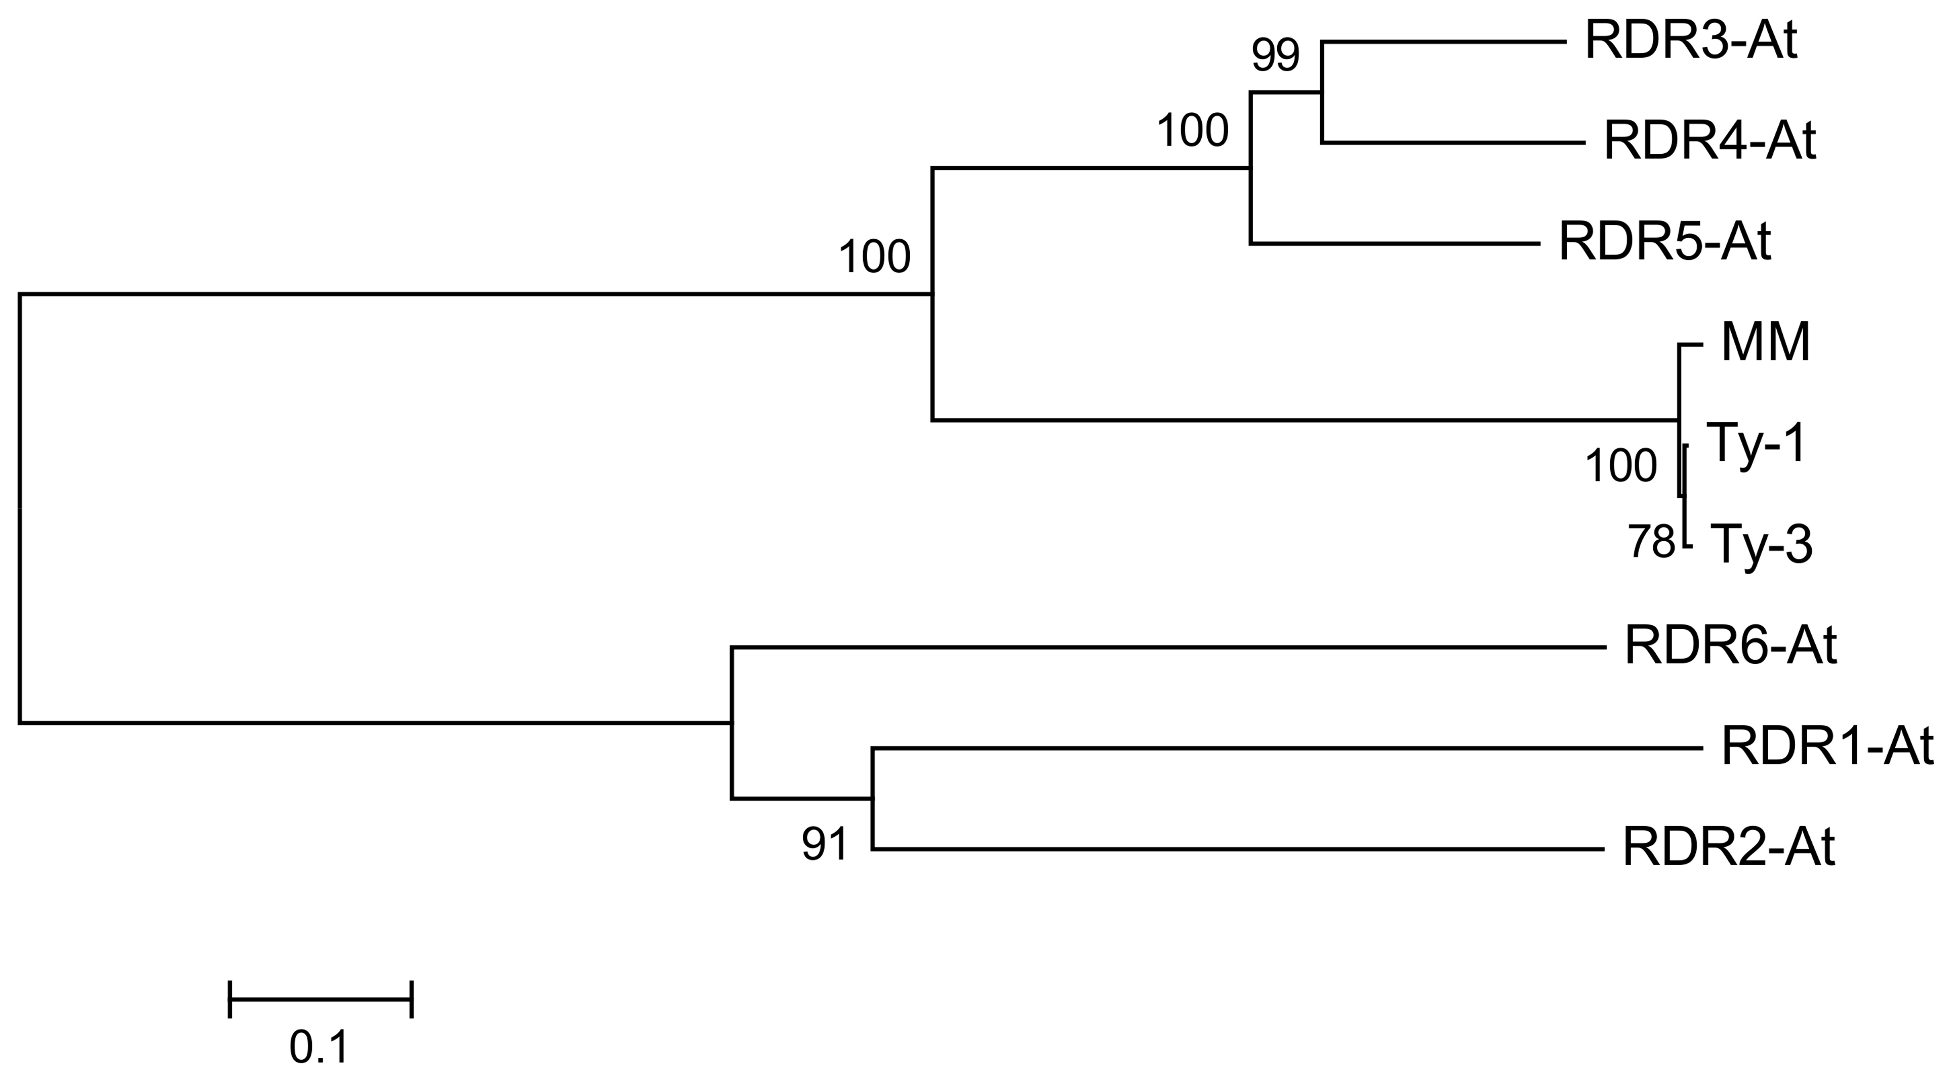 Neighbour joining tree of protein sequences of <i>A. thaliana</i> RDR1-6, <i>Ty-1</i>, <i>Ty-3</i>, and the susceptible Moneymaker allele (MM).